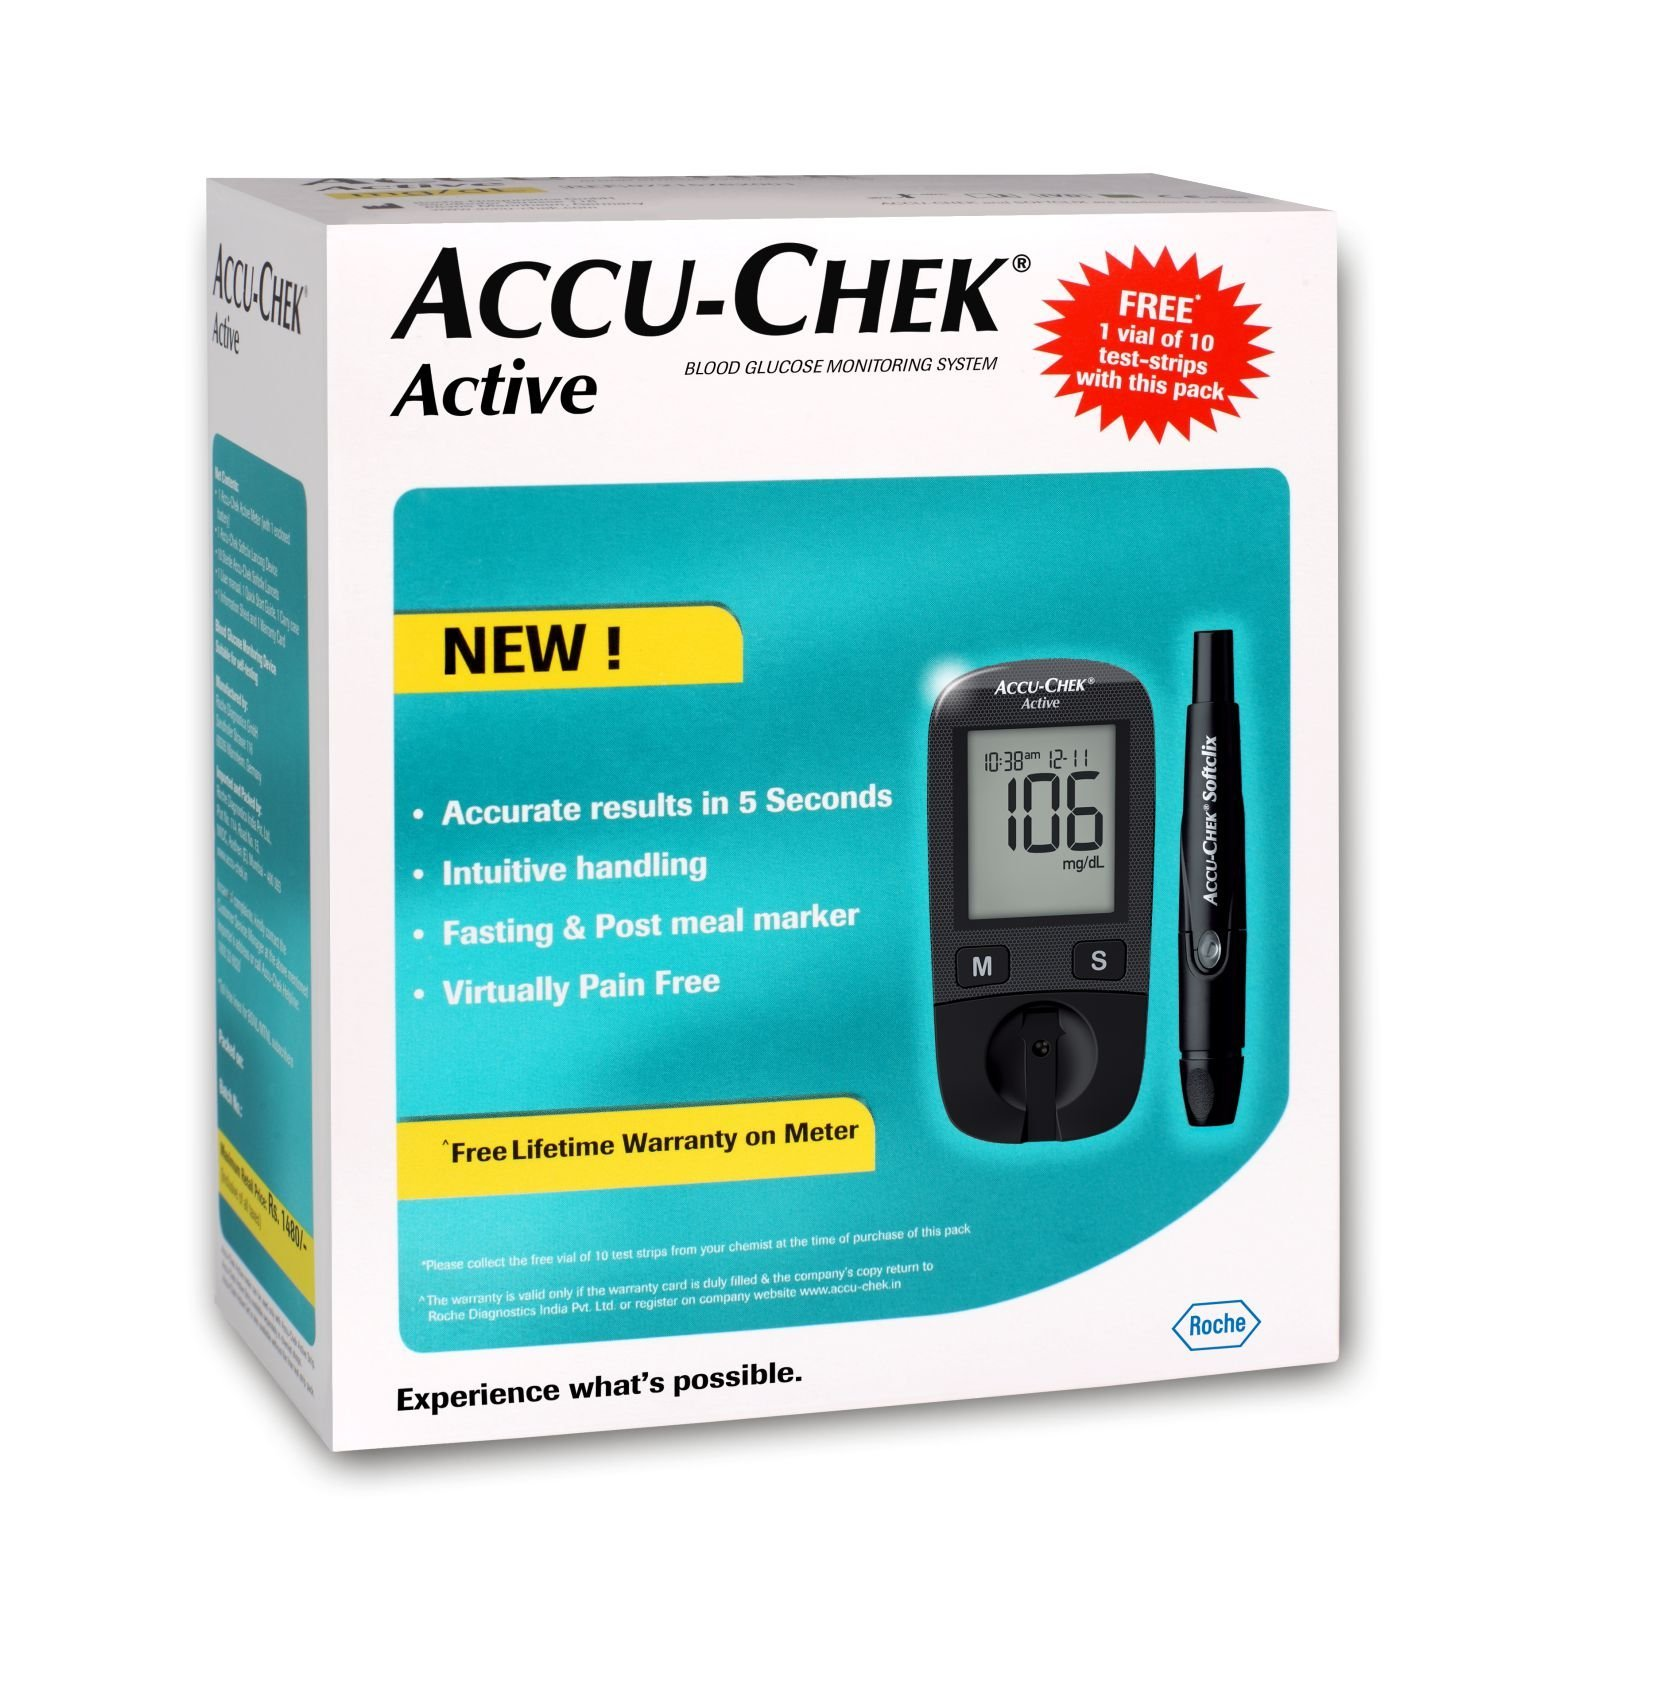 Accu-Chek Active Blood Glucose Meter Kit (Multicolor)( Vial of 10 strips free) by ACCU-CHEK